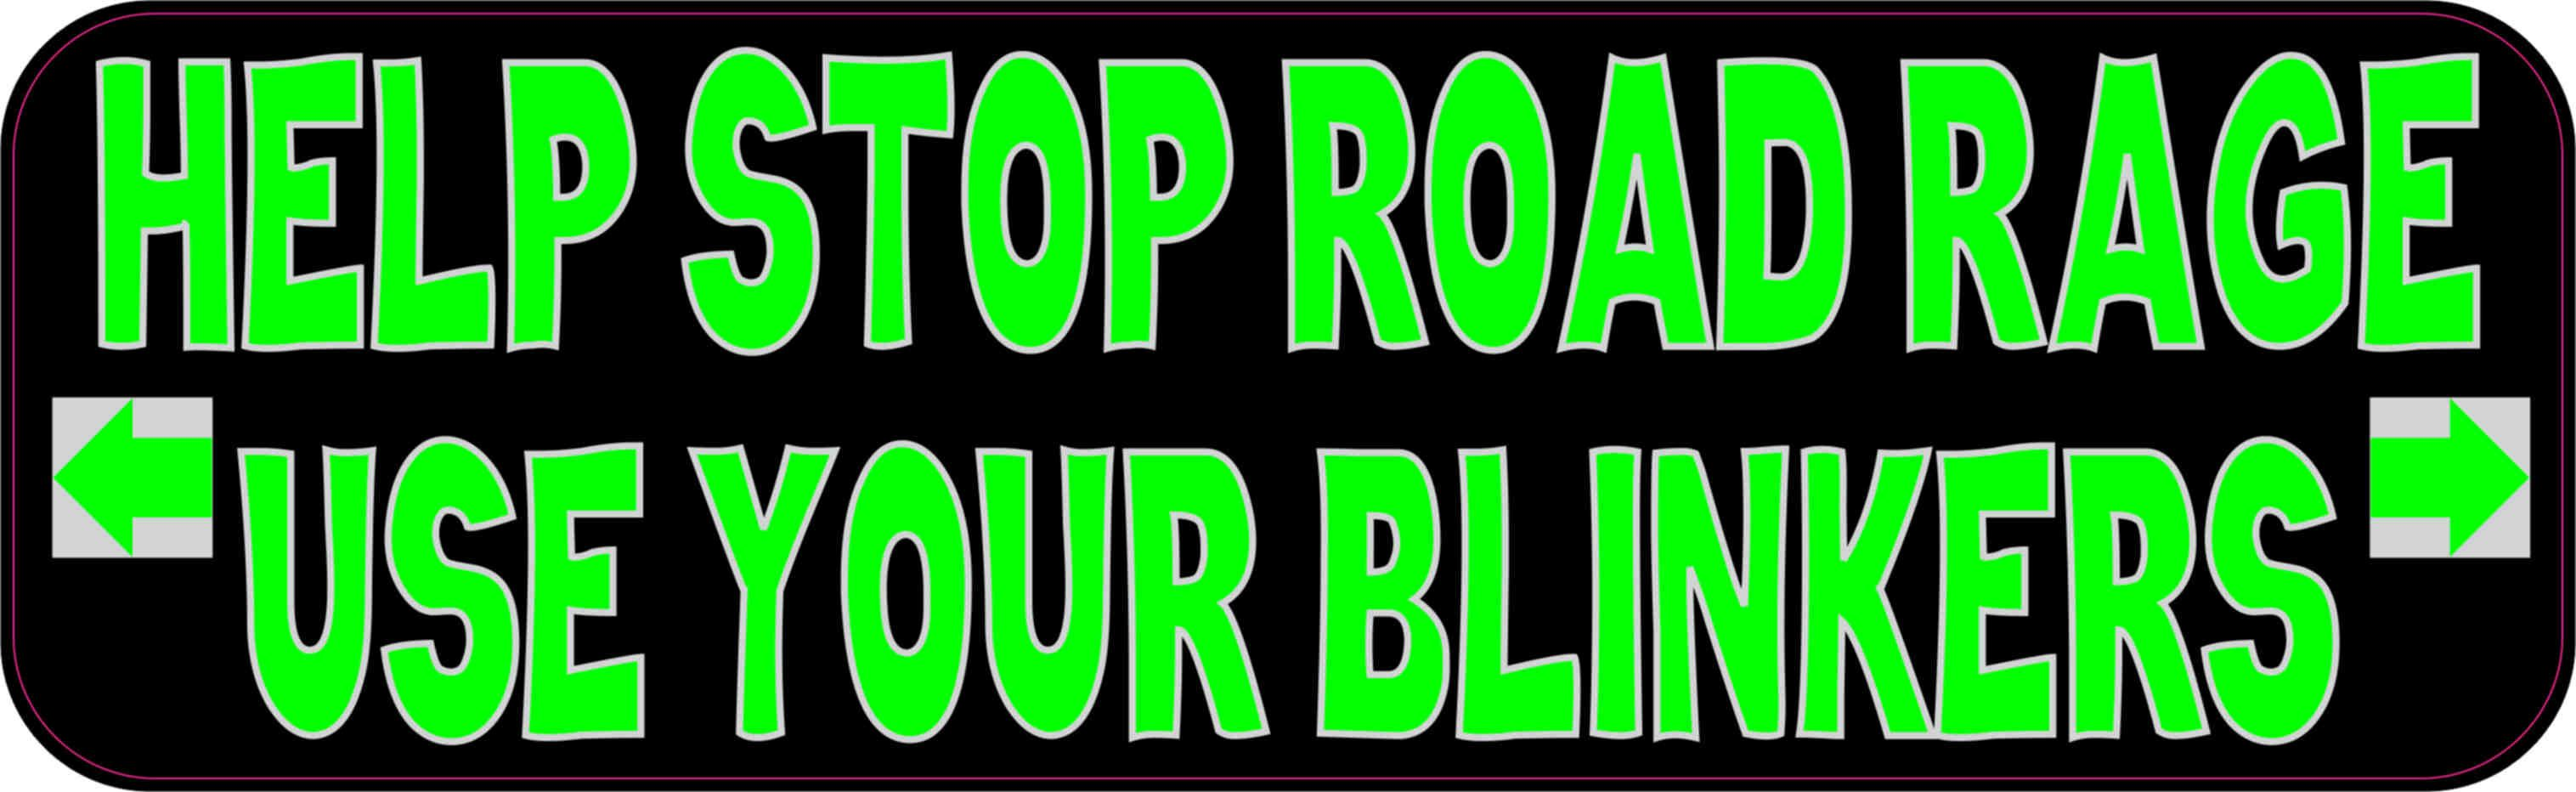 10in X 3in Use Your Blinkers Bumper Sticker Funny Vinyl Vehicle Stickers Funny Bumper Stickers Bumper Stickers Bumper Magnets [ 932 x 3032 Pixel ]